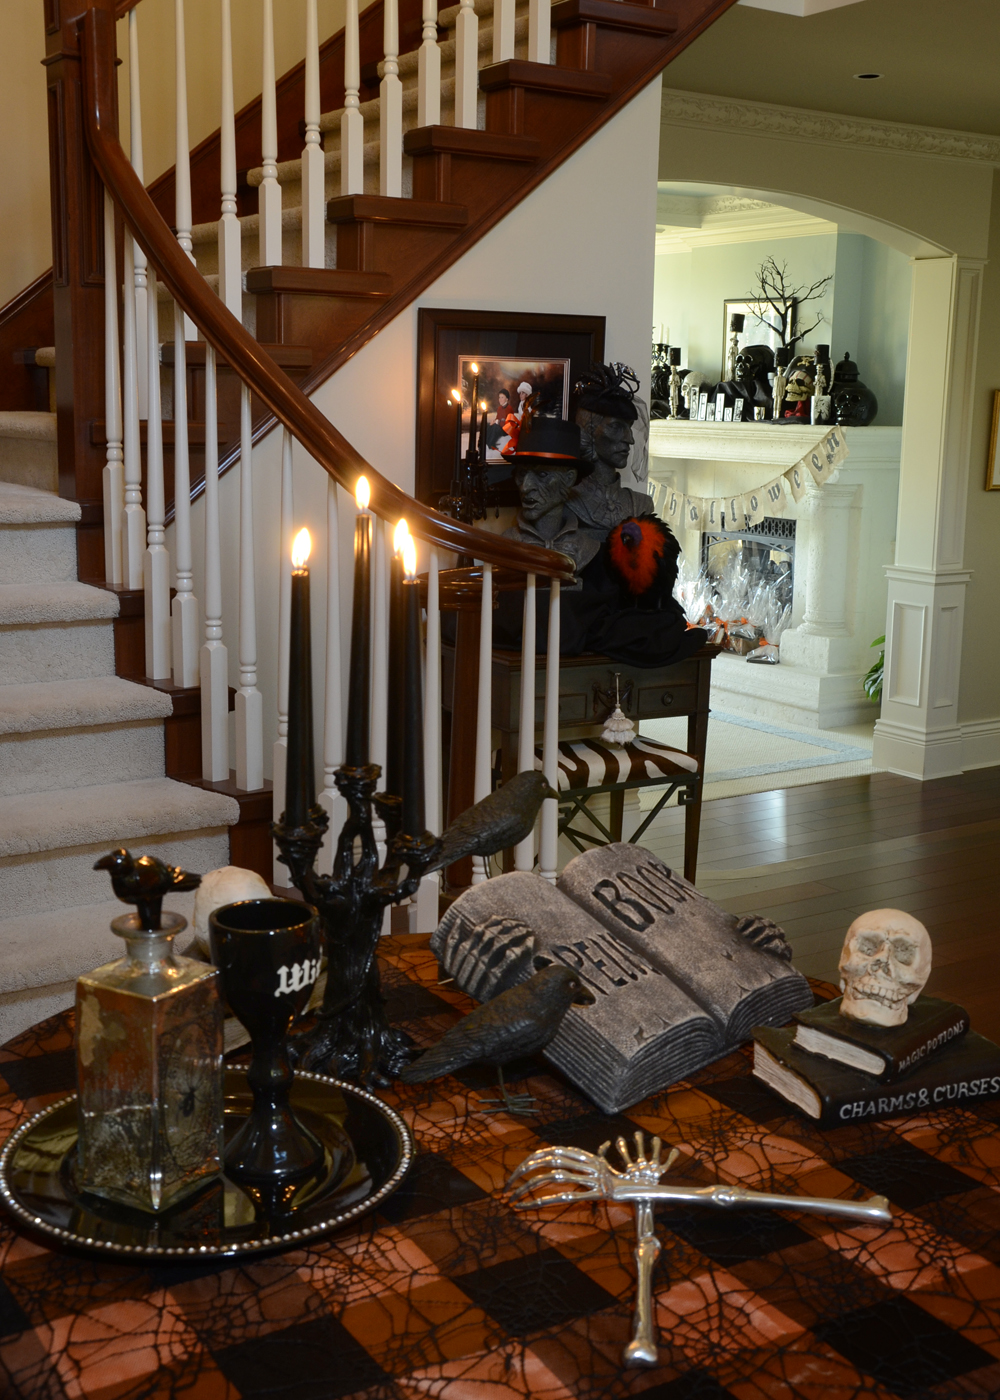 Lita Lane Decorating Our Home For Halloween